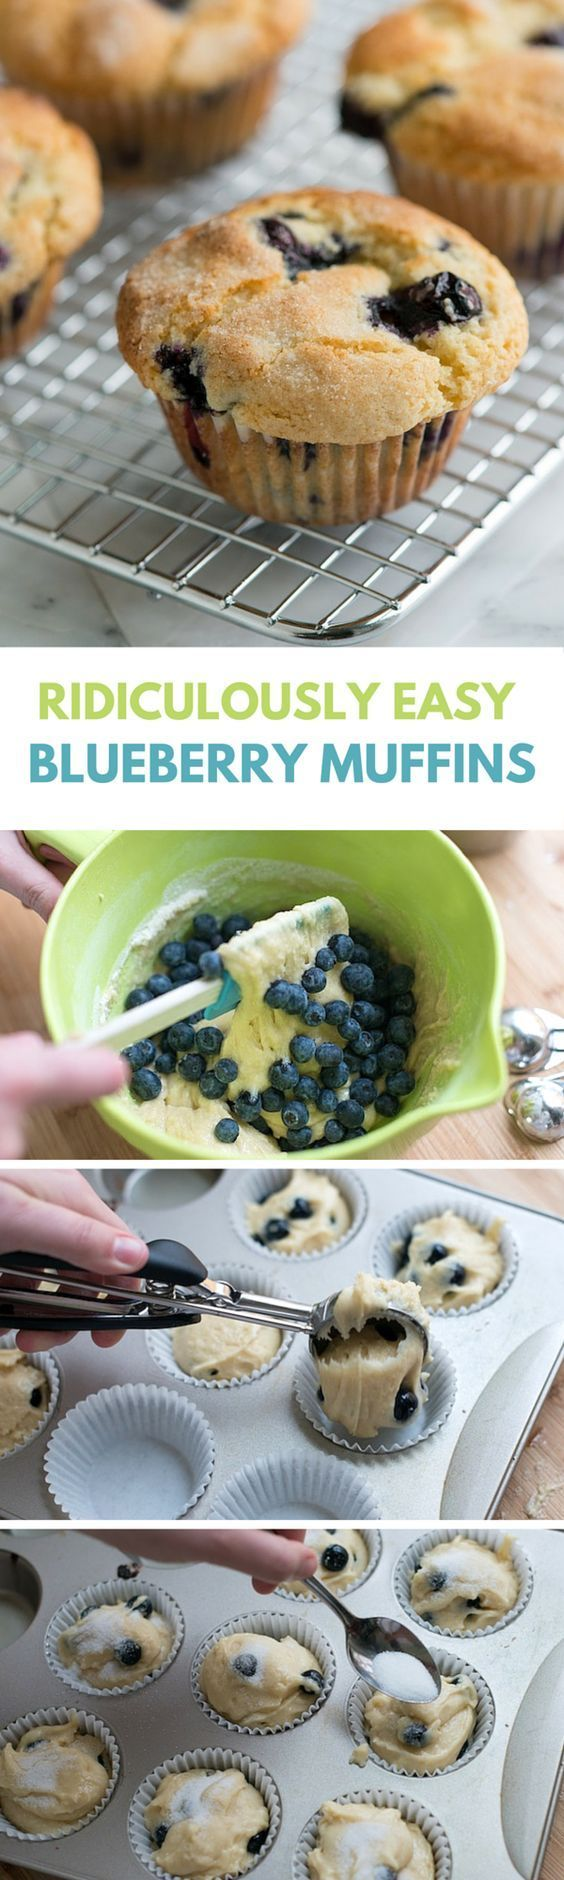 You only need one bowl to make this Easy Blueberry Muffin Recipe on inspiredtaste.net with blueberries, flour, sugar, vanilla, and vegetable oil. (Fruit Muffin Blueberries)